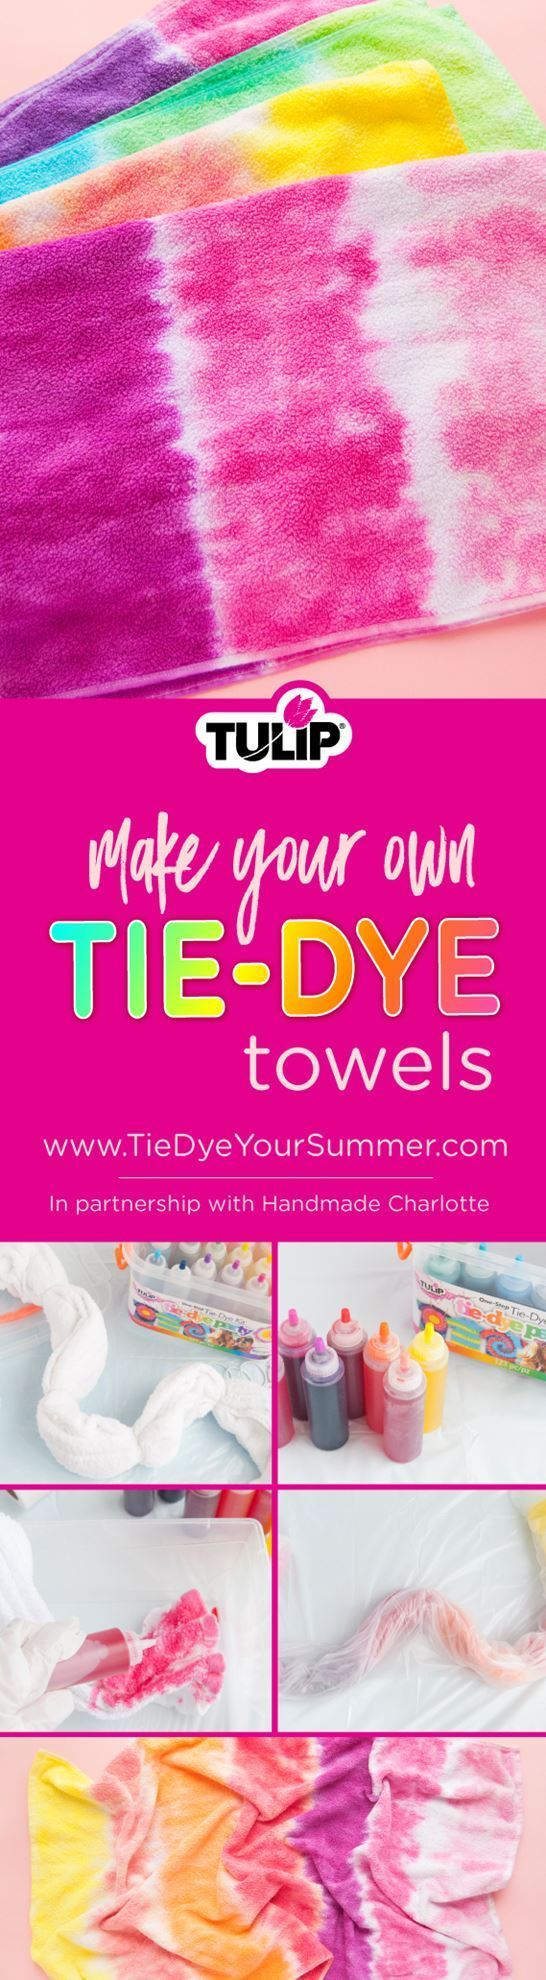 Tulip How To Tie Dye Towels